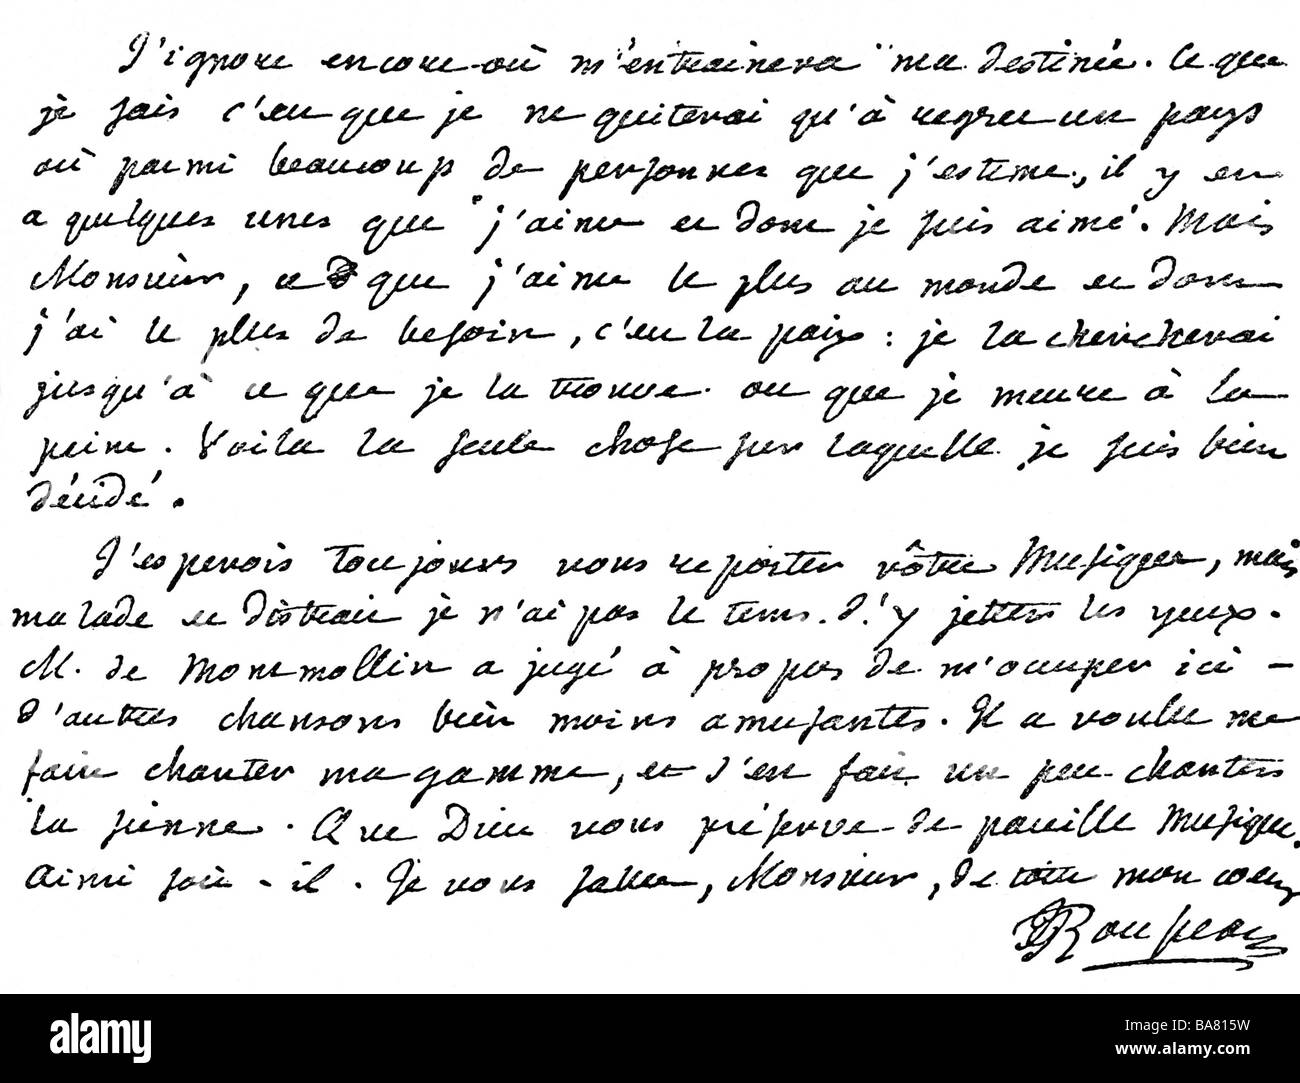 Rousseau, Jean-Jacques, 28.6.1712 - 2.7.1778, French author / writer, philosopher, autograph, excerpt of a letter, - Stock Image